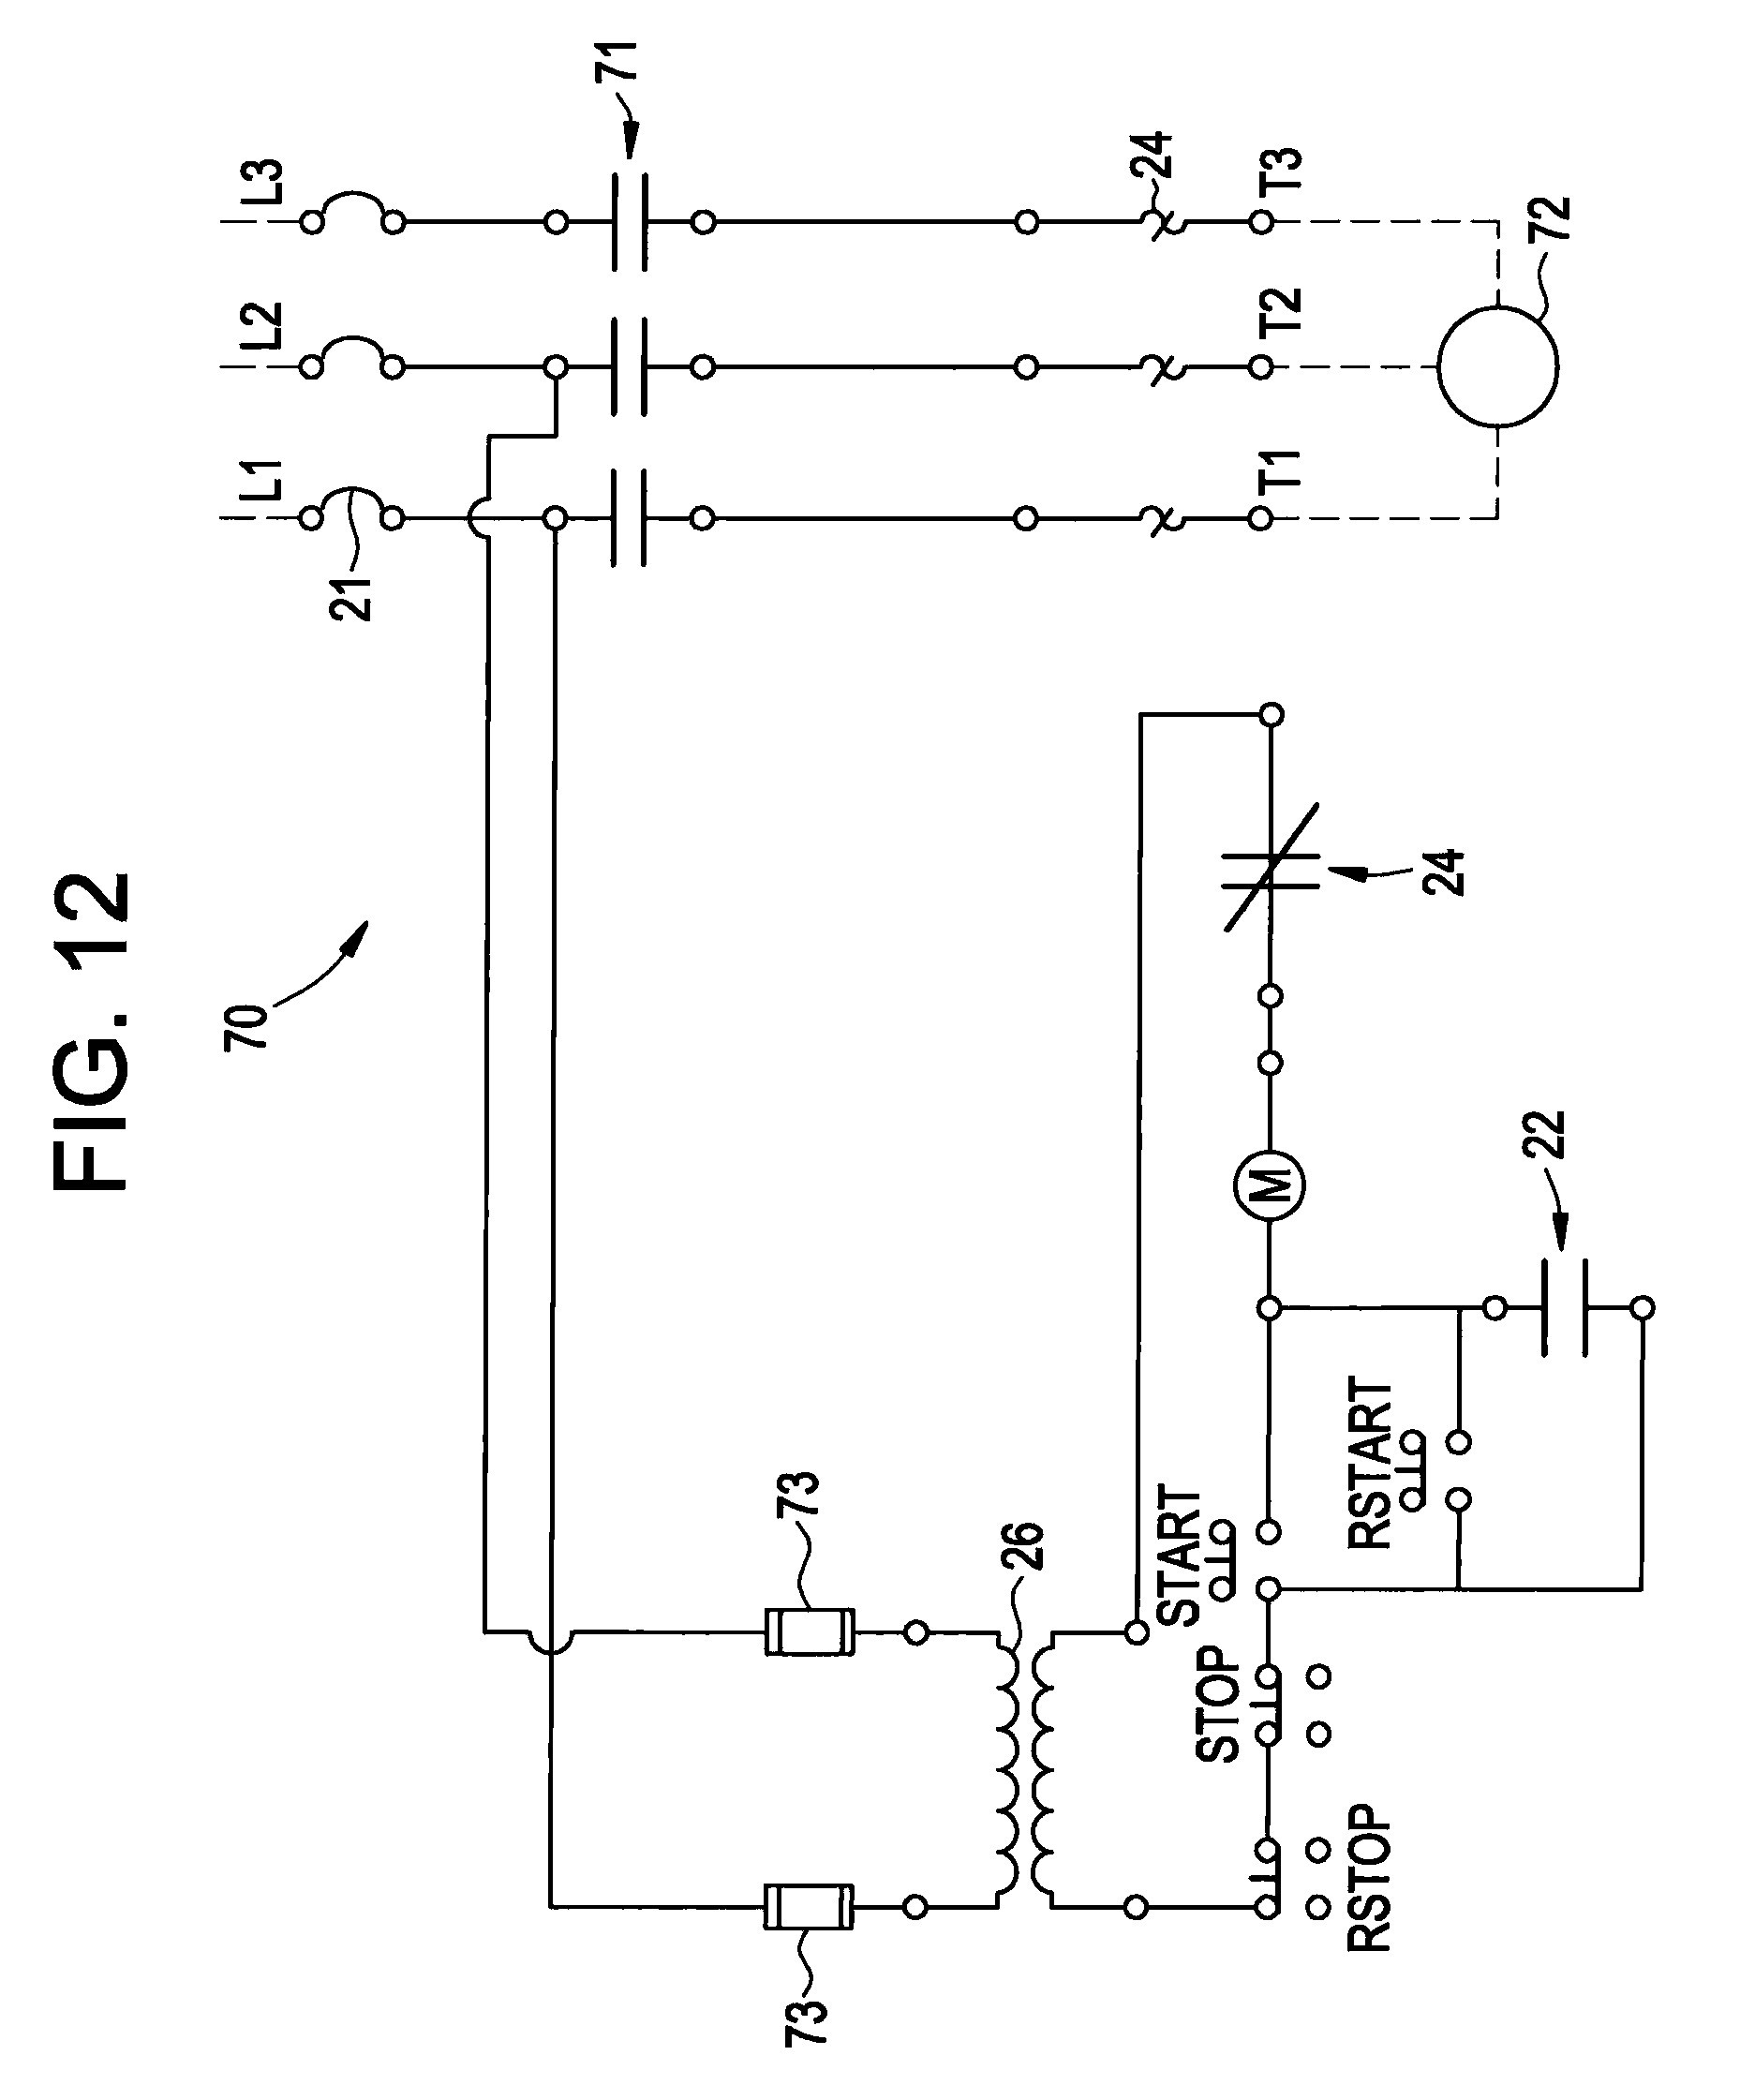 hight resolution of square d wiring diagram square d wiring diagram book file 0140 new wiring diagram book